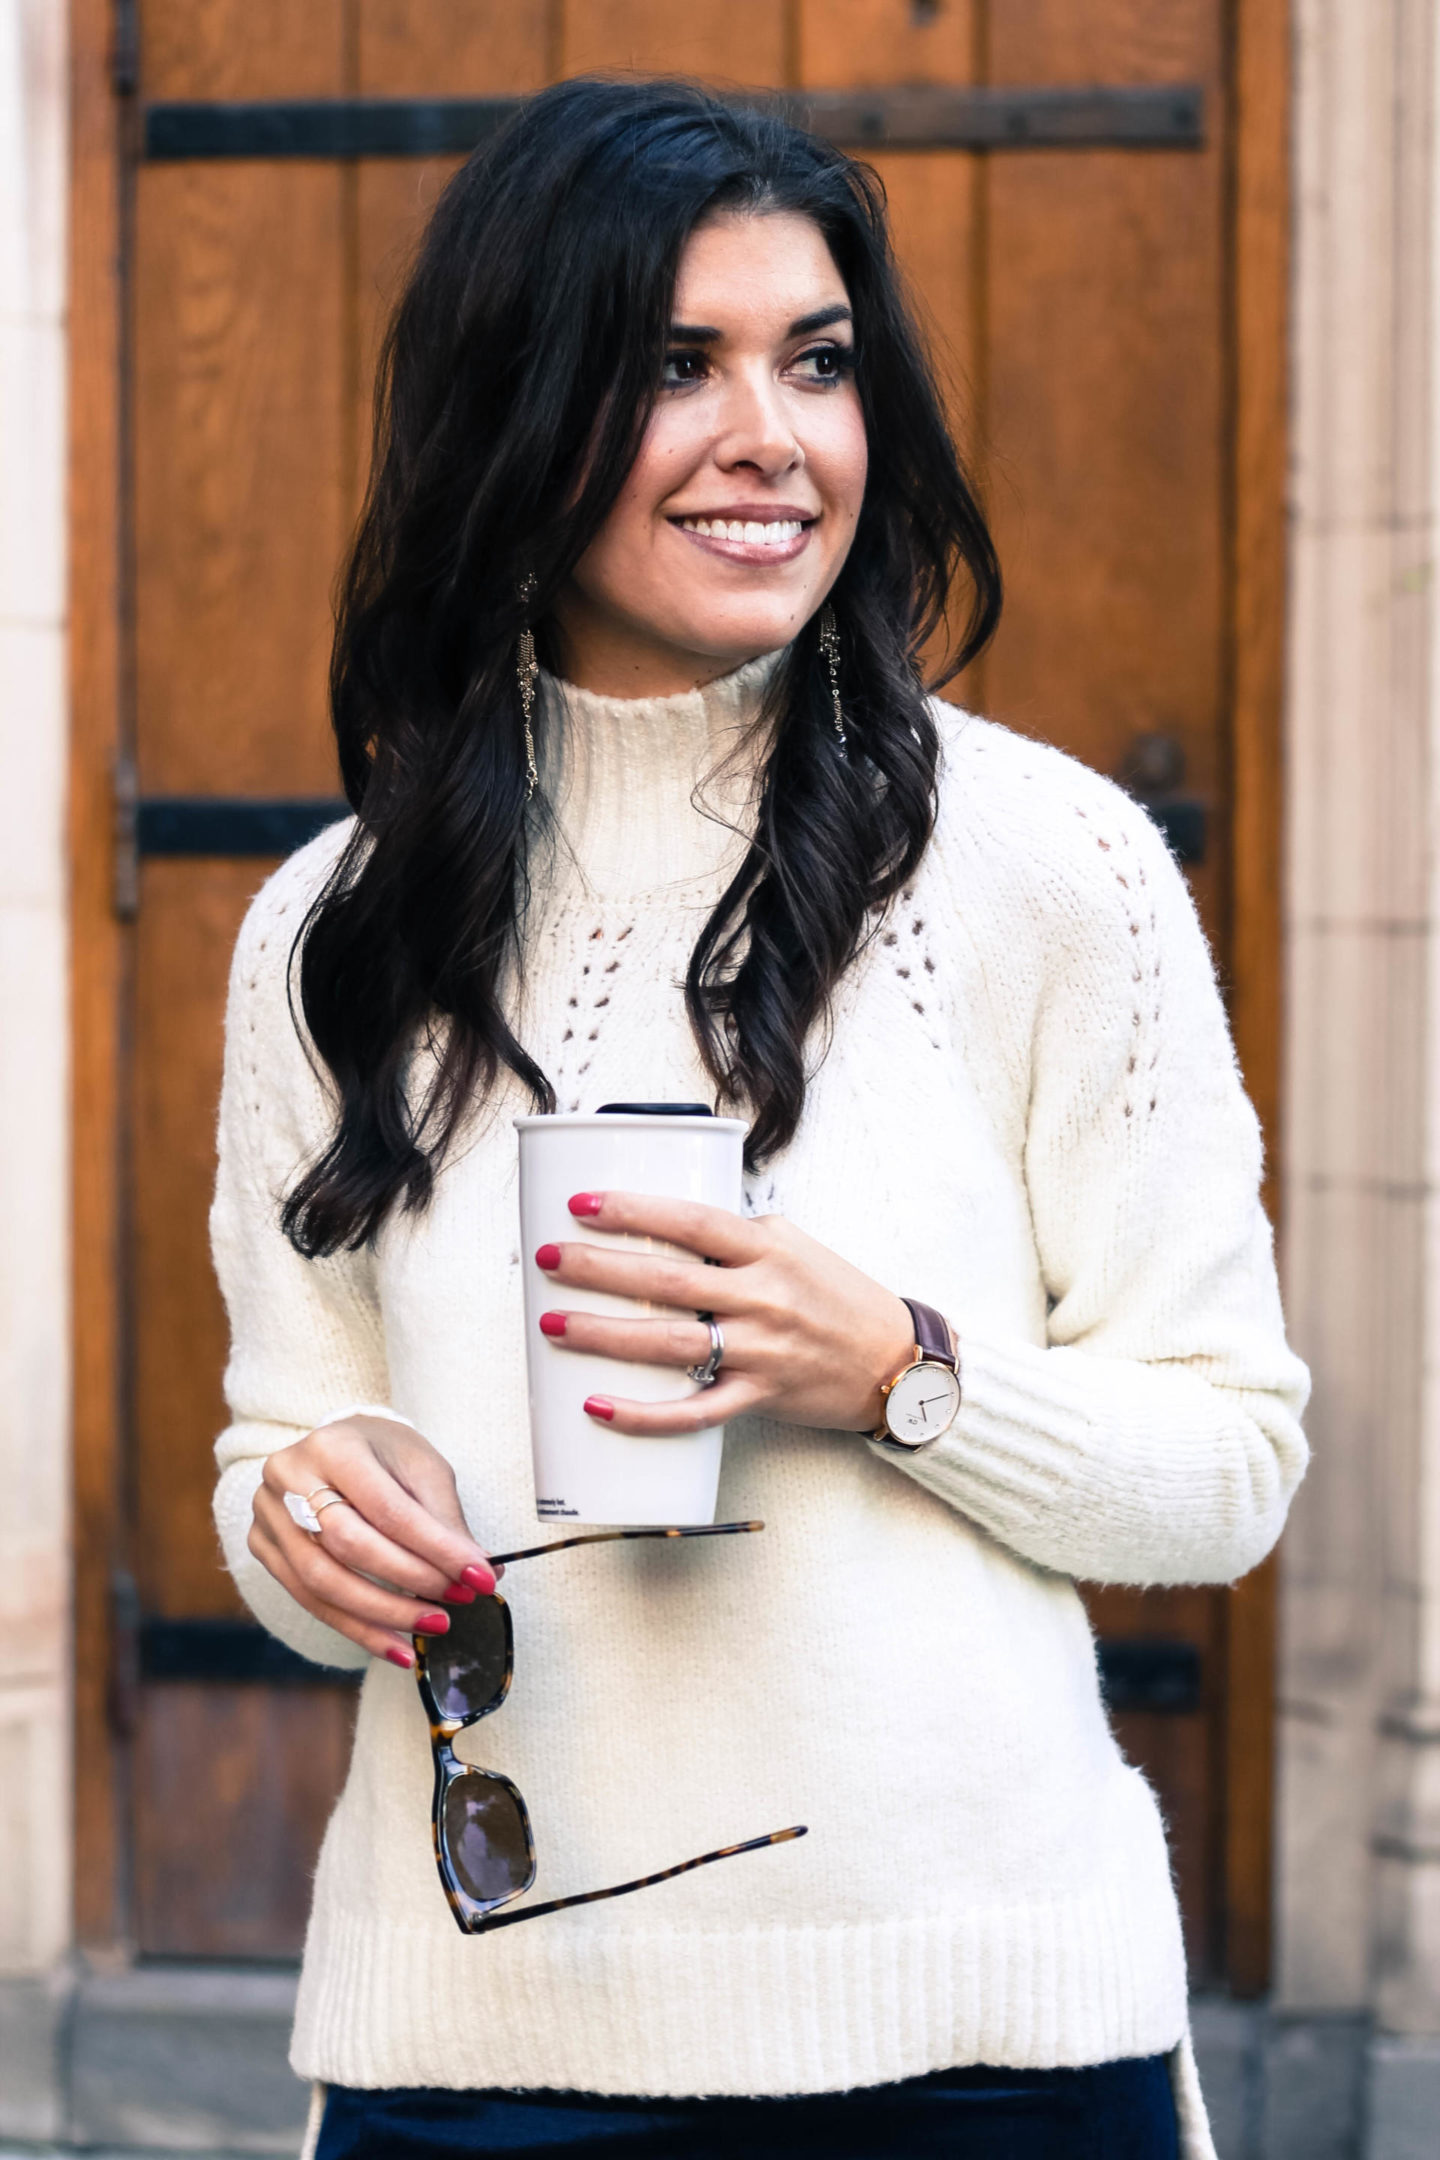 Velvet Pants With Banana Republic - Velvet Pants And A Cozy Sweater With Banana Republic by New York fashion blogger Style Waltz